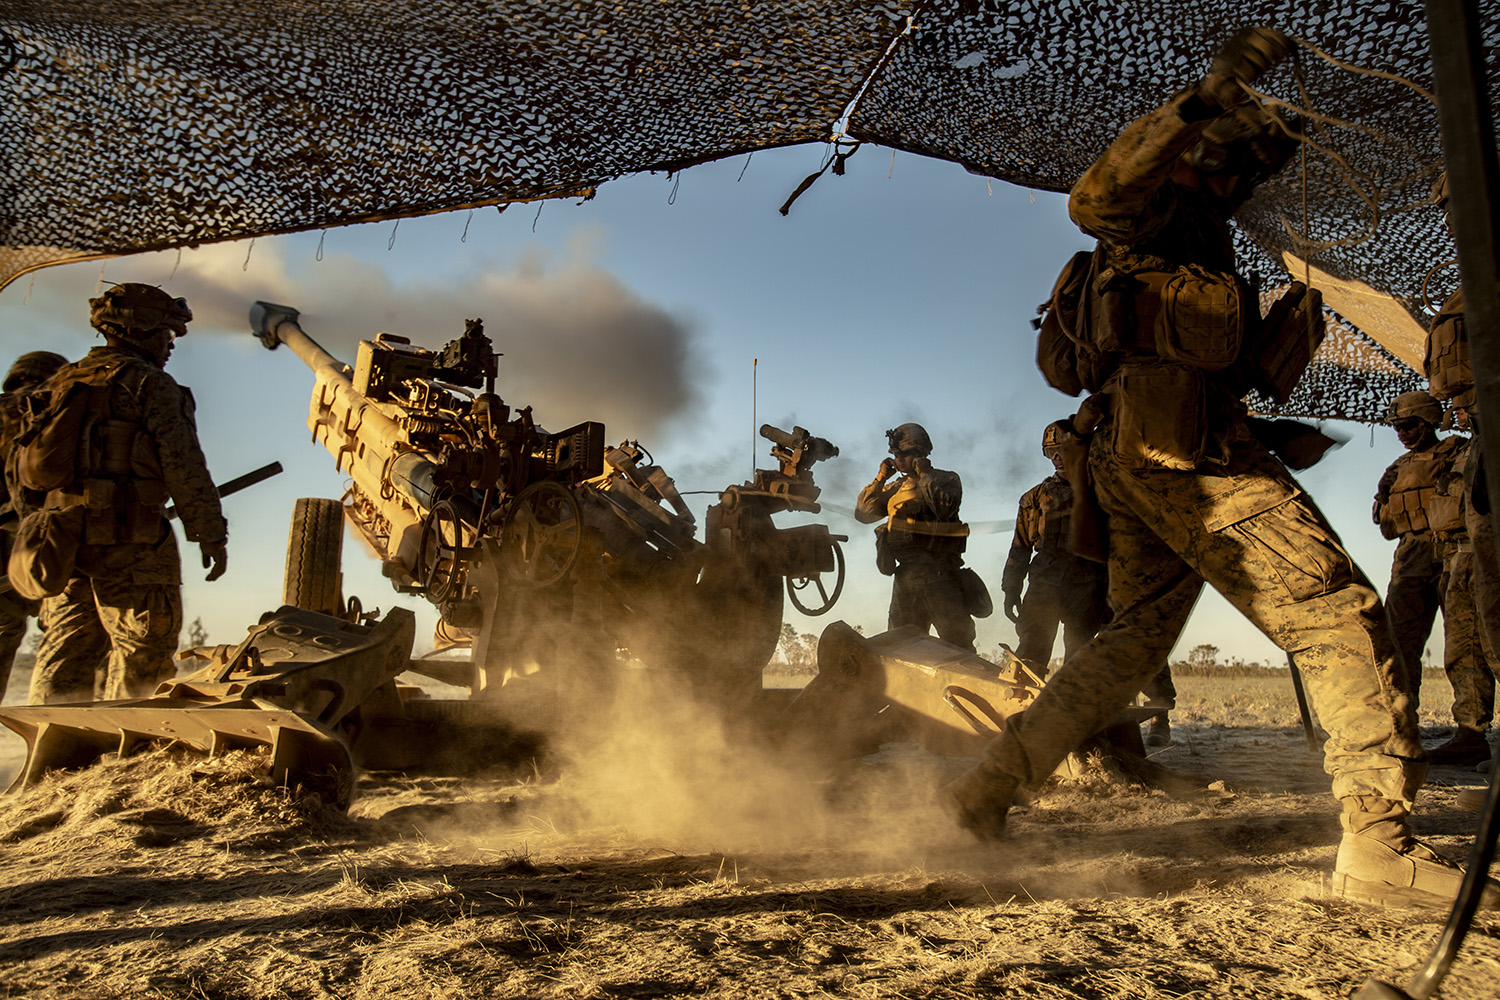 U.S. Marines with the Ground Combat Element, Marine Rotational Force - Darwin, fire an M777 howitzer during Exercise Koolendong at Mount Bundey Training Area, NT, Australia, Aug. 27, 2019. (Lance Cpl. Nicholas Filca/Marine Corps)